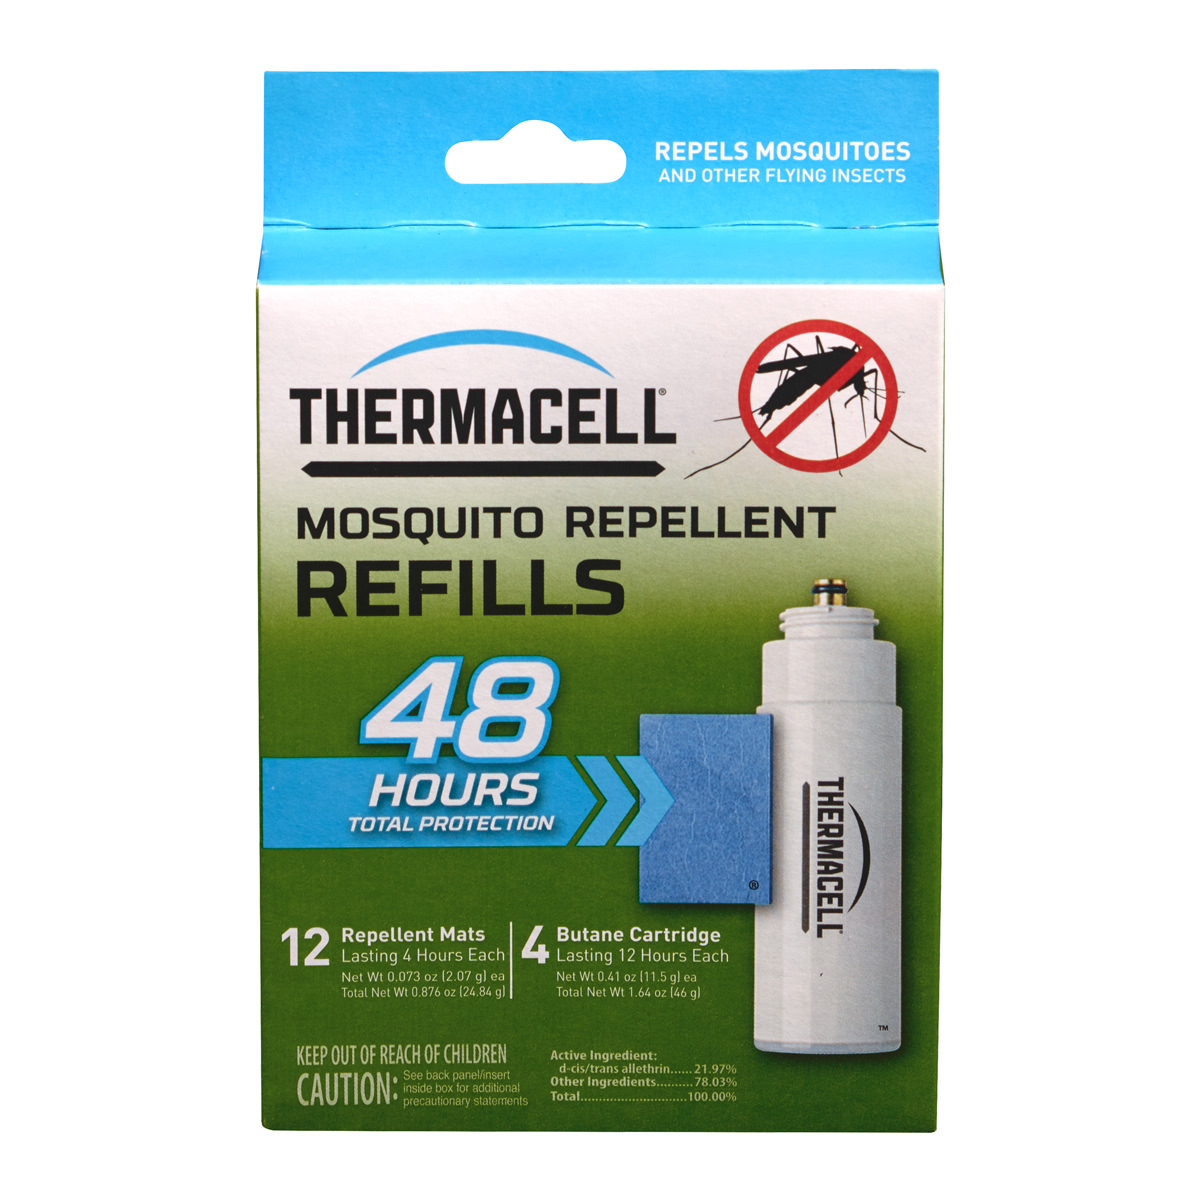 Thermacell Mosquito Repellent Refill, 48-Hour Protection by Thermacell